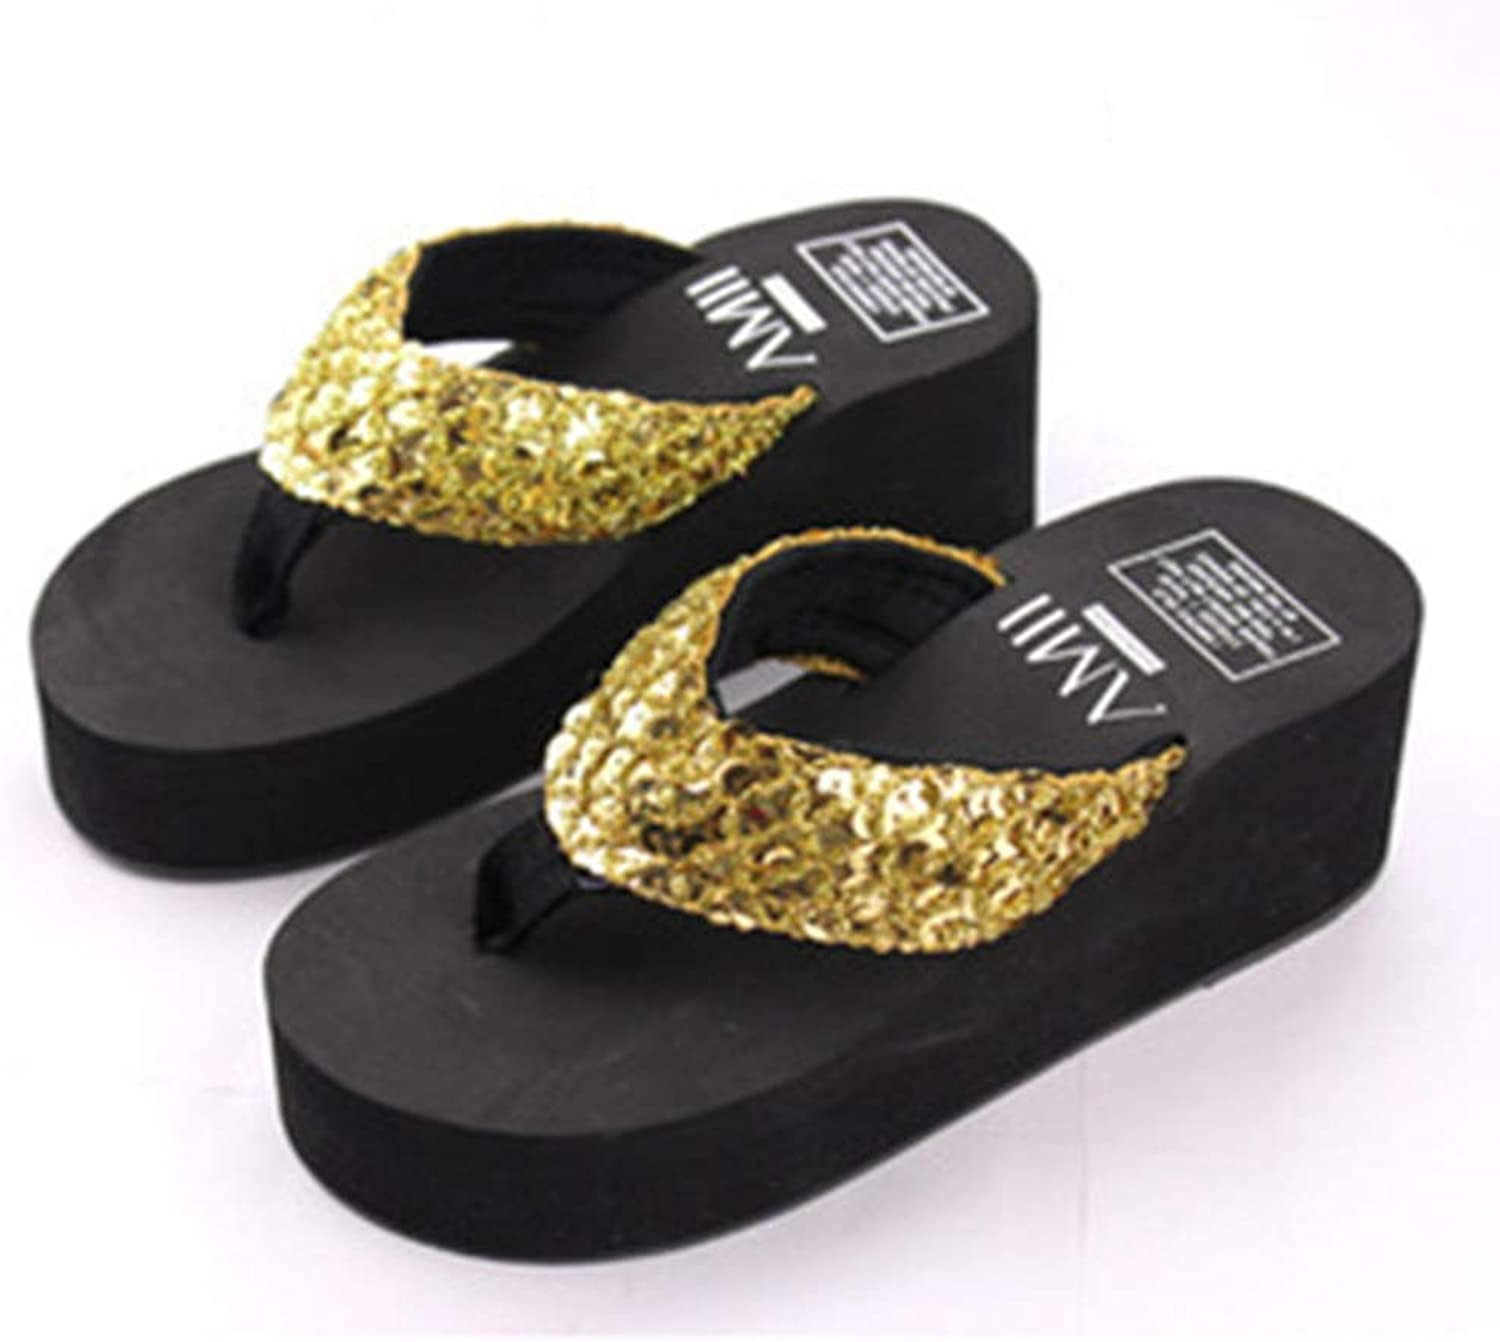 T-JULY Summer Women Platform Wedge Flip Flops Sandals Fashion High Heel silverforma Slippers Sandals